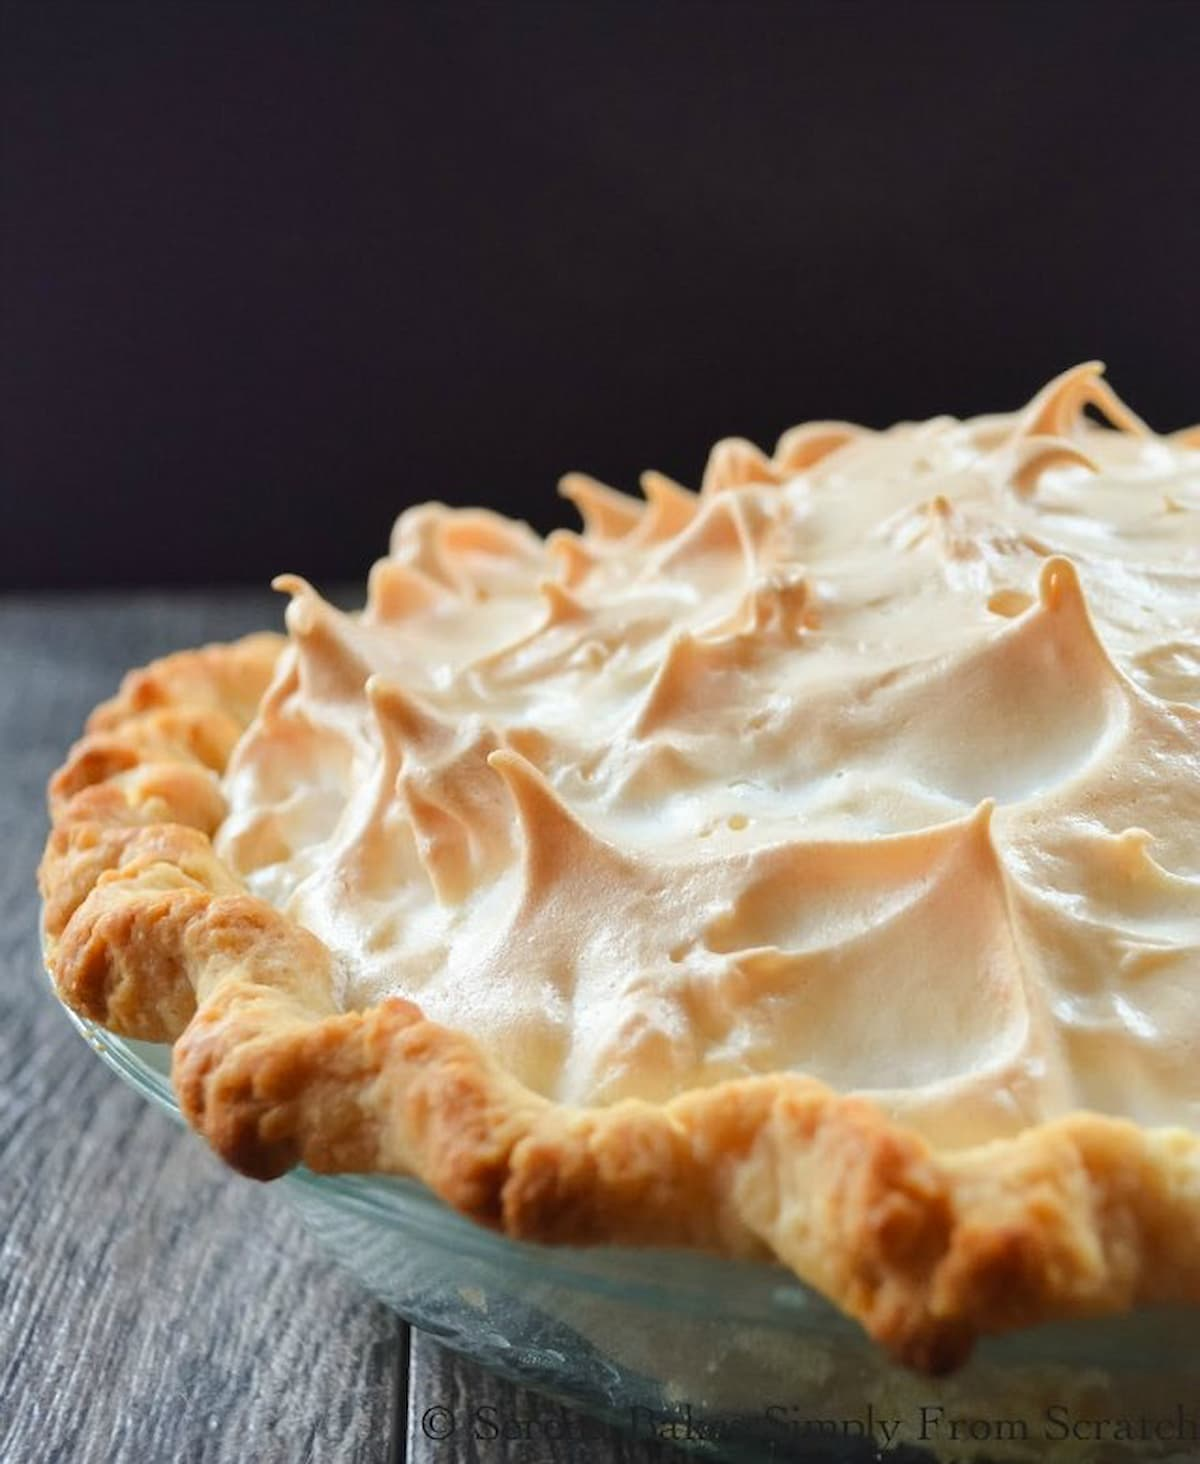 A whole Lemon Meringue Pie topped with a weep free meringue.